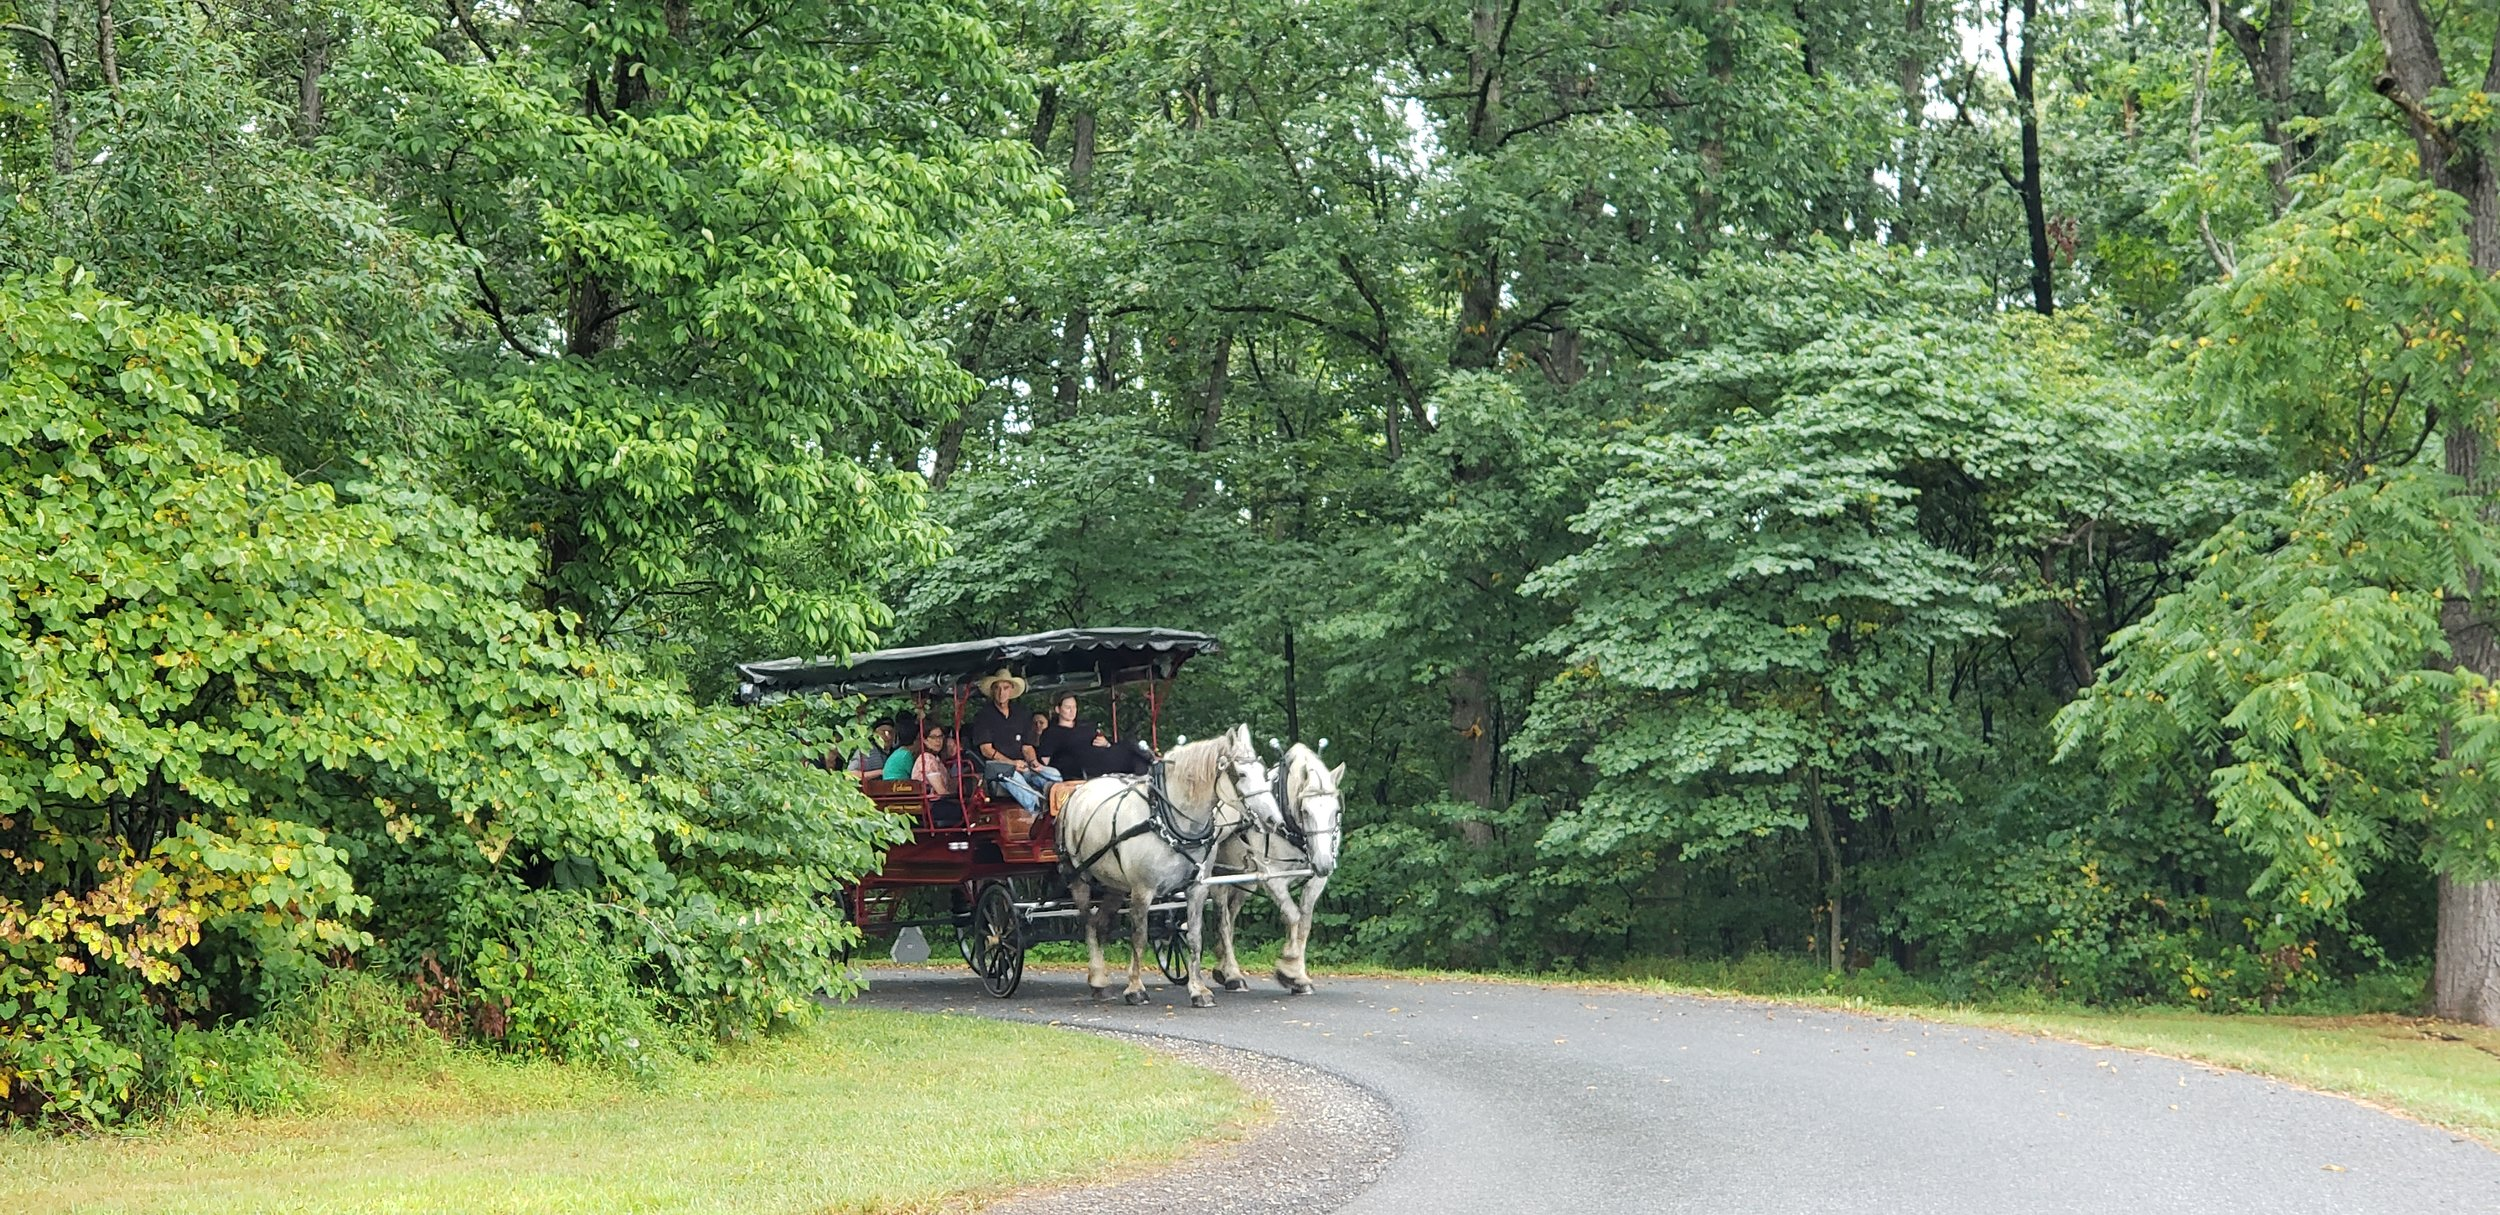 Tour the Battlefield by horse-drawn carriage